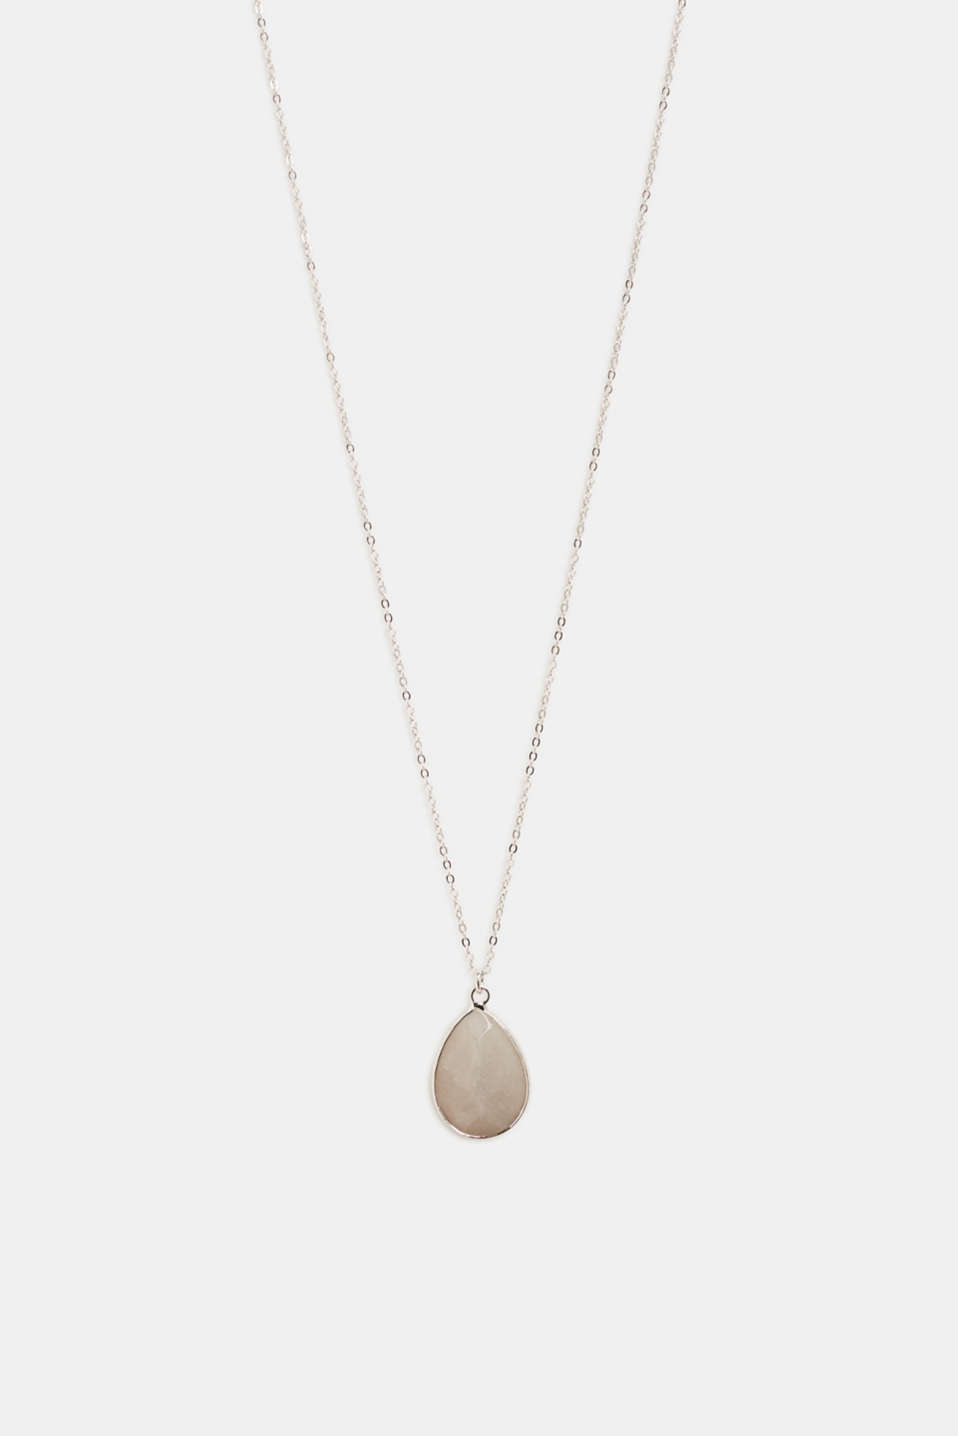 Esprit - Necklace with a facet-cut stone pendant